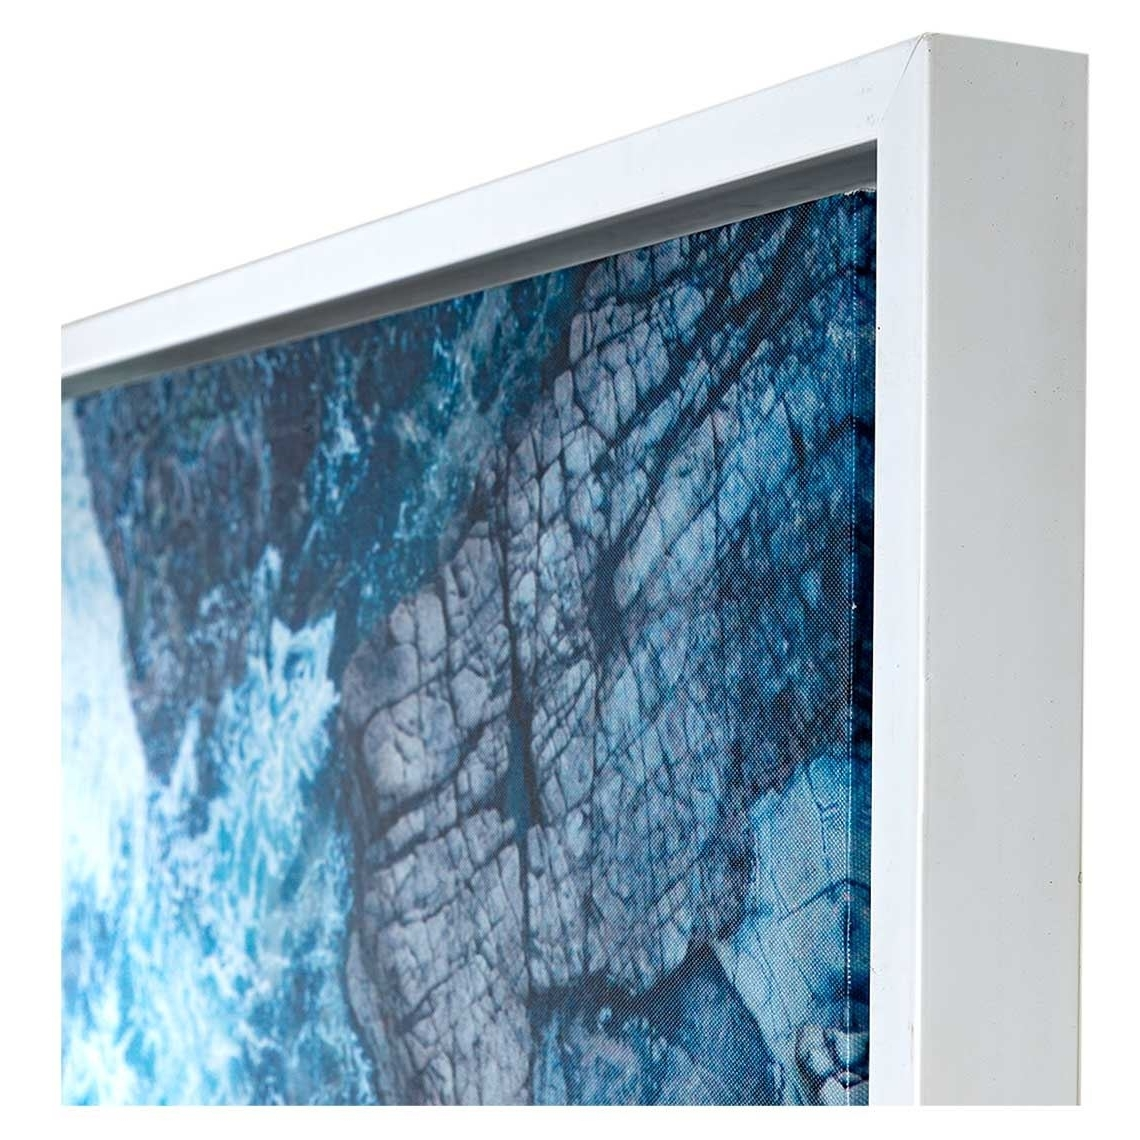 Neeks & Gaston Framed Canvas 120X100Cm Mooloolaba Waves In Trendy Mandurah Canvas Wall Art (View 12 of 15)